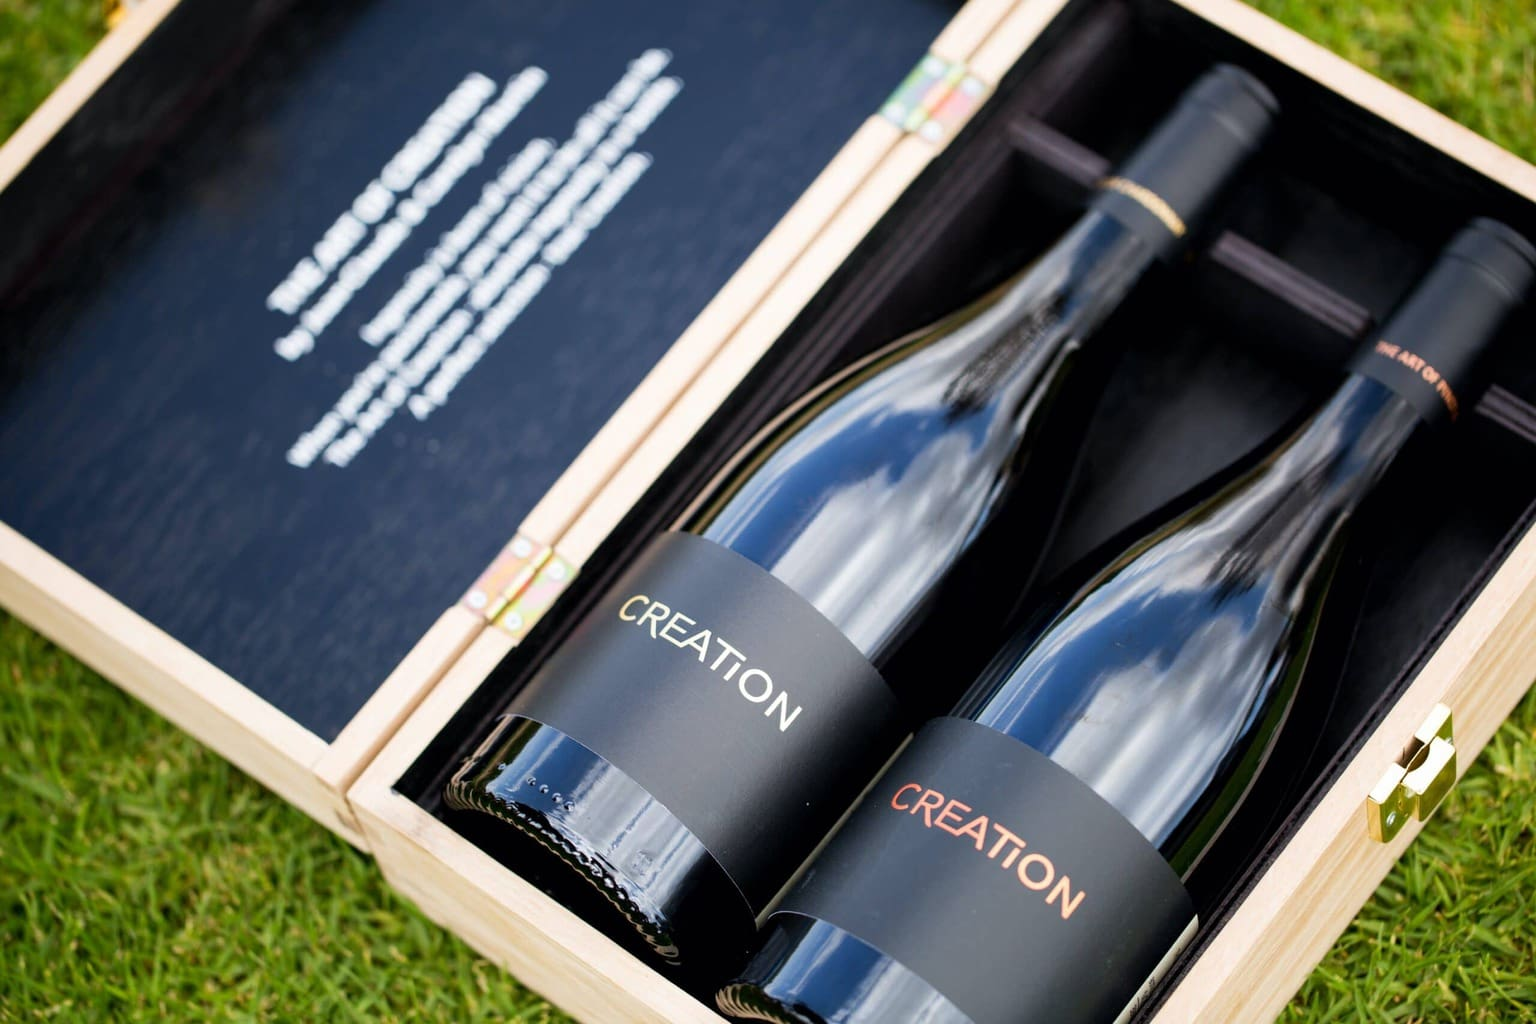 Creation wines